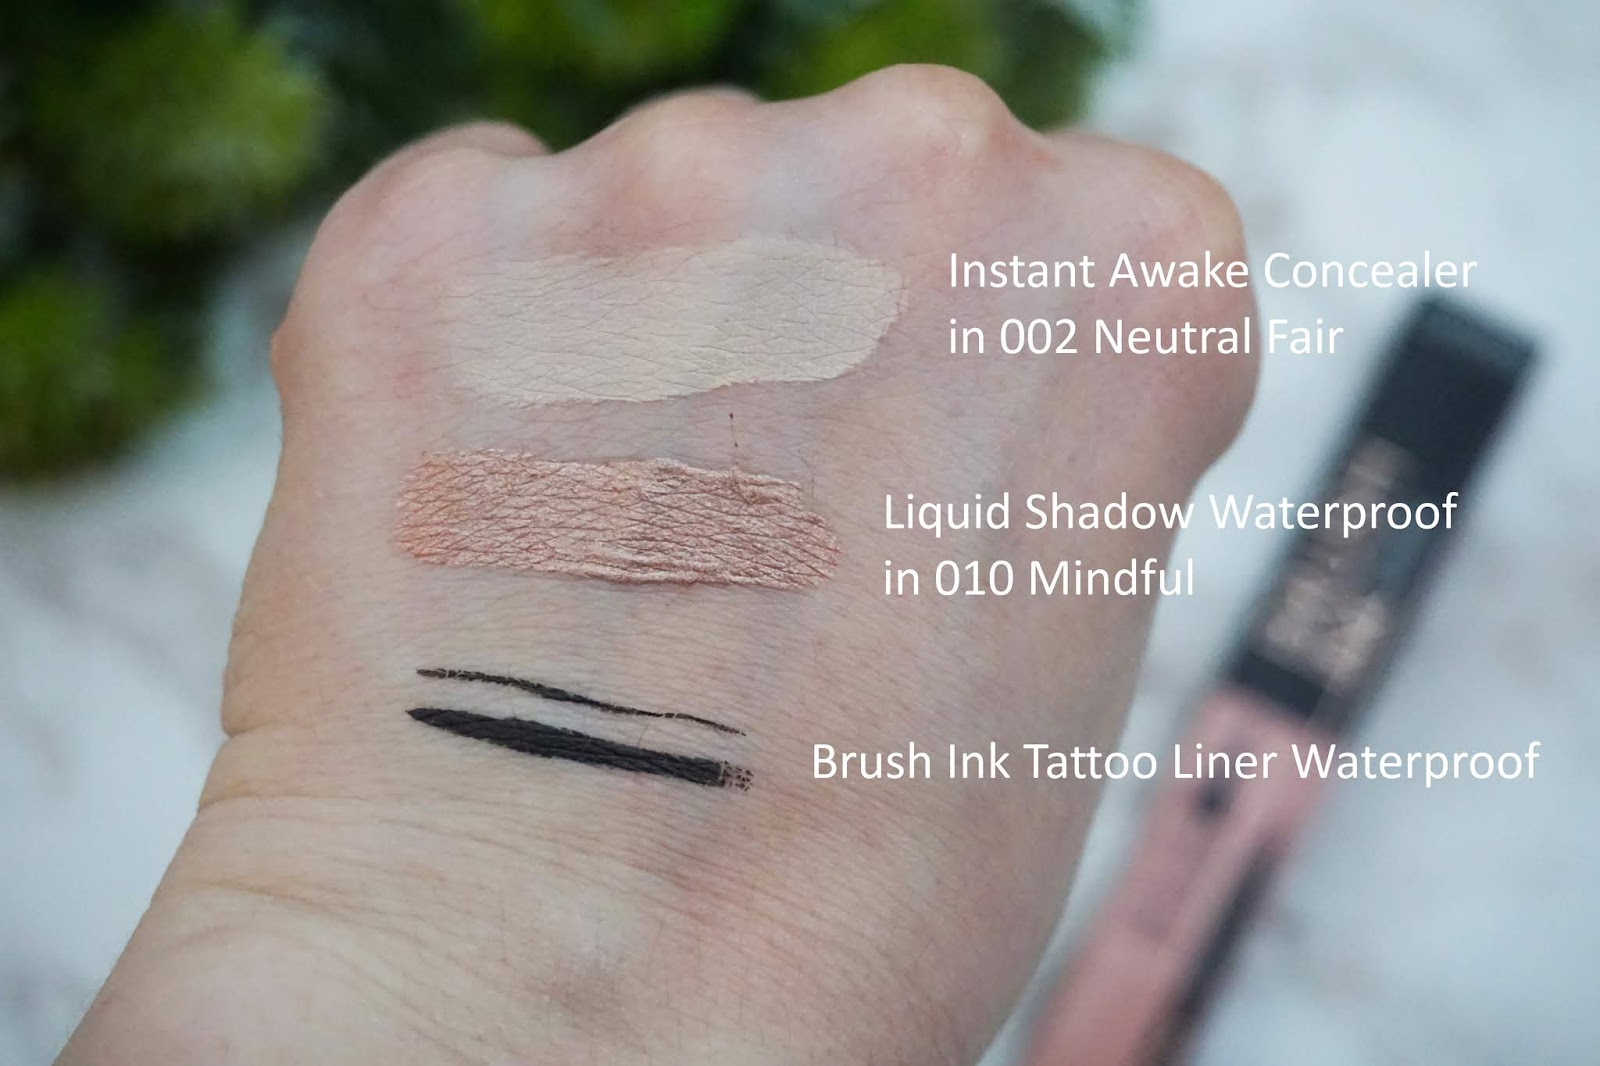 Catrice Instant Awake Concealer in 002 Neutral Fair, Brush Ink Tattoo Liner Waterproof, Liquid Shadow Waterproof in 010 Mindful Swatch